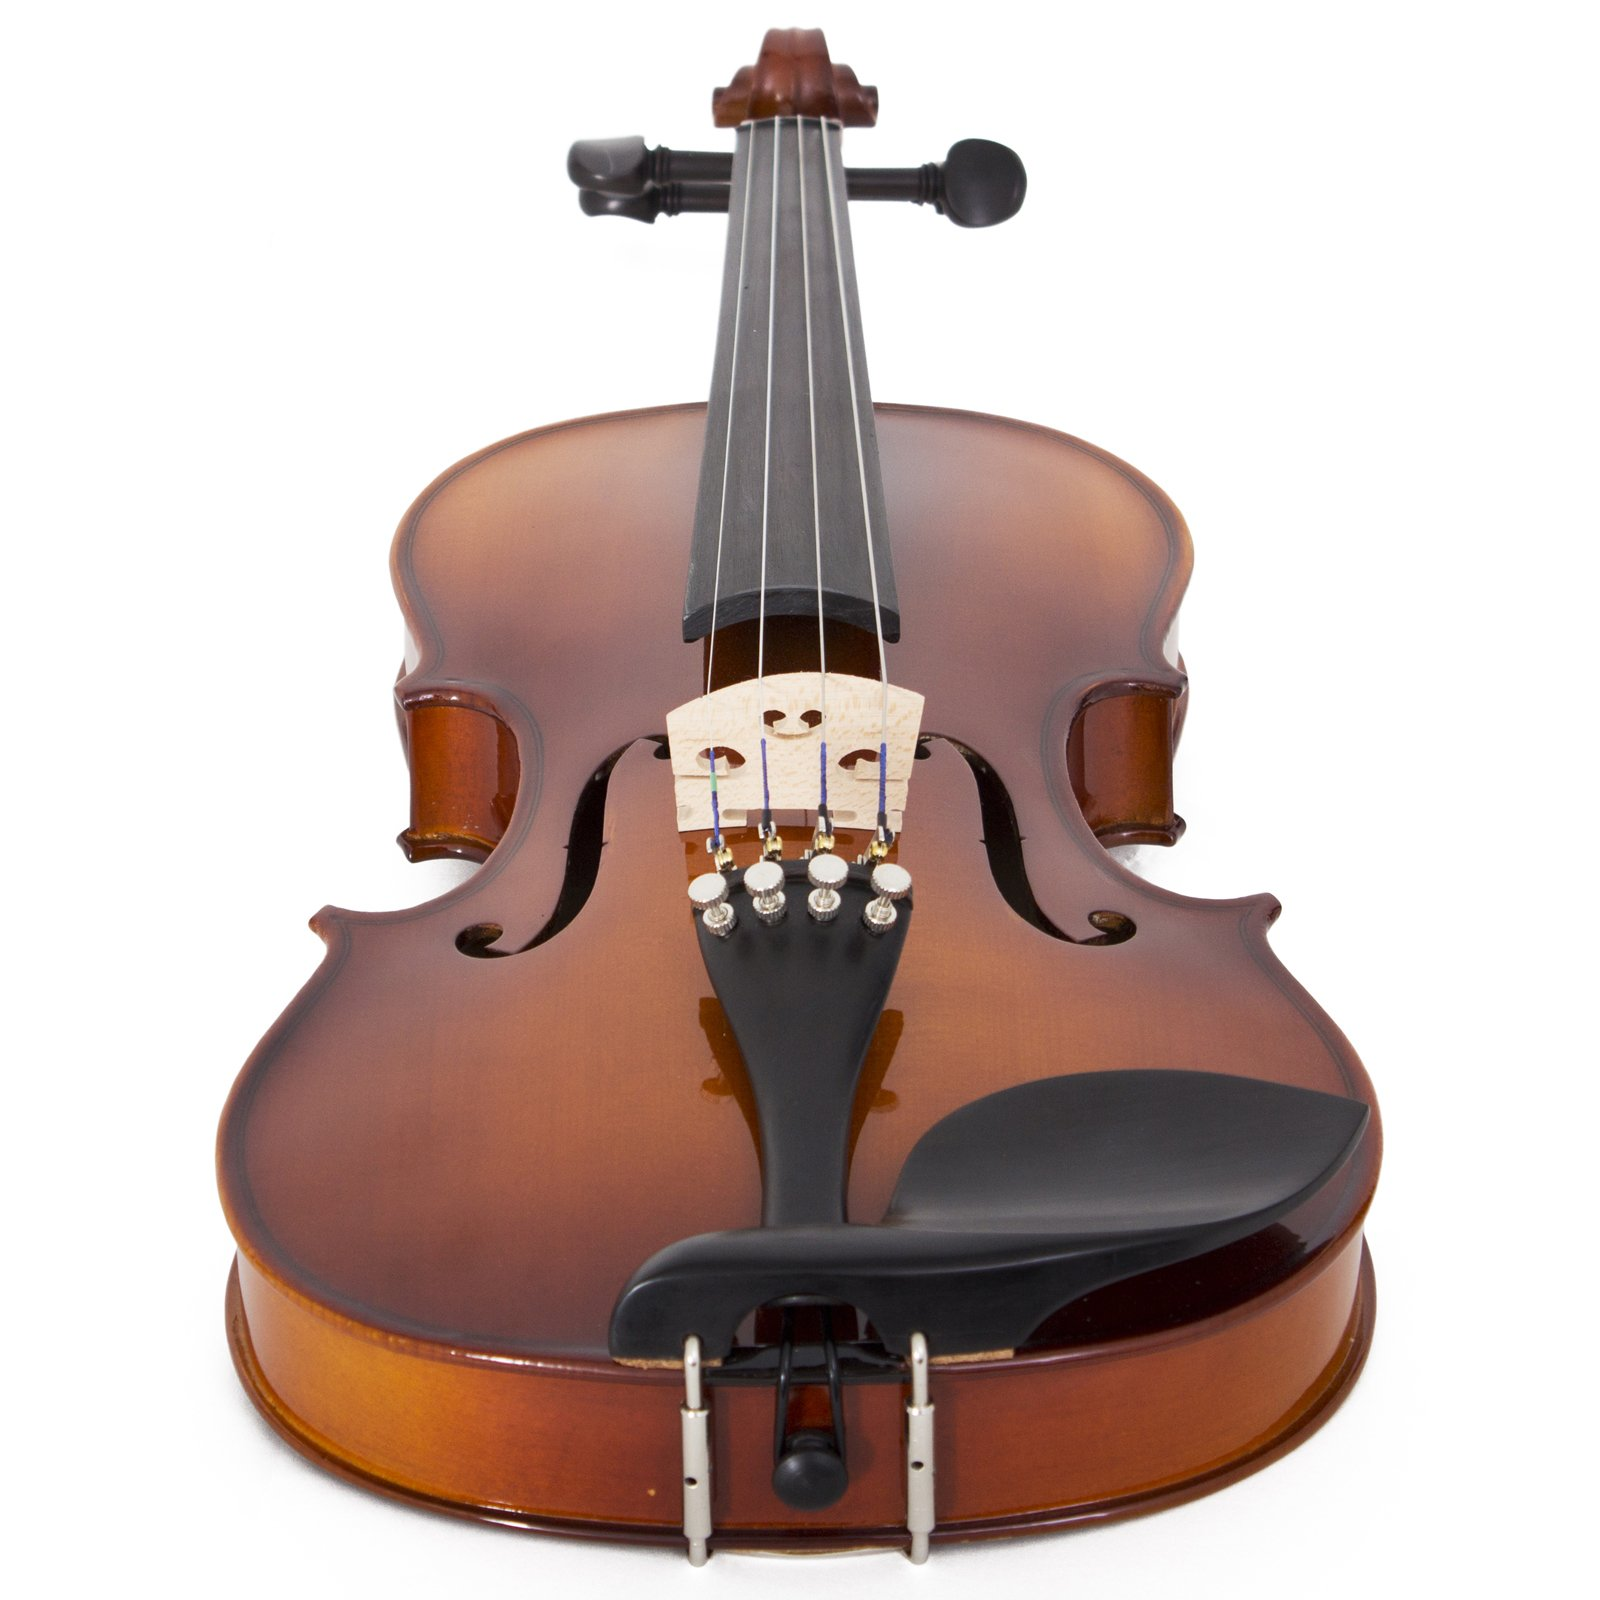 Cecilio CVN-320L Solidwood Ebony Fitted Left-Handed Violin with D'Addario Prelude Strings, Size 4/4 (Full Size) by Cecilio (Image #4)